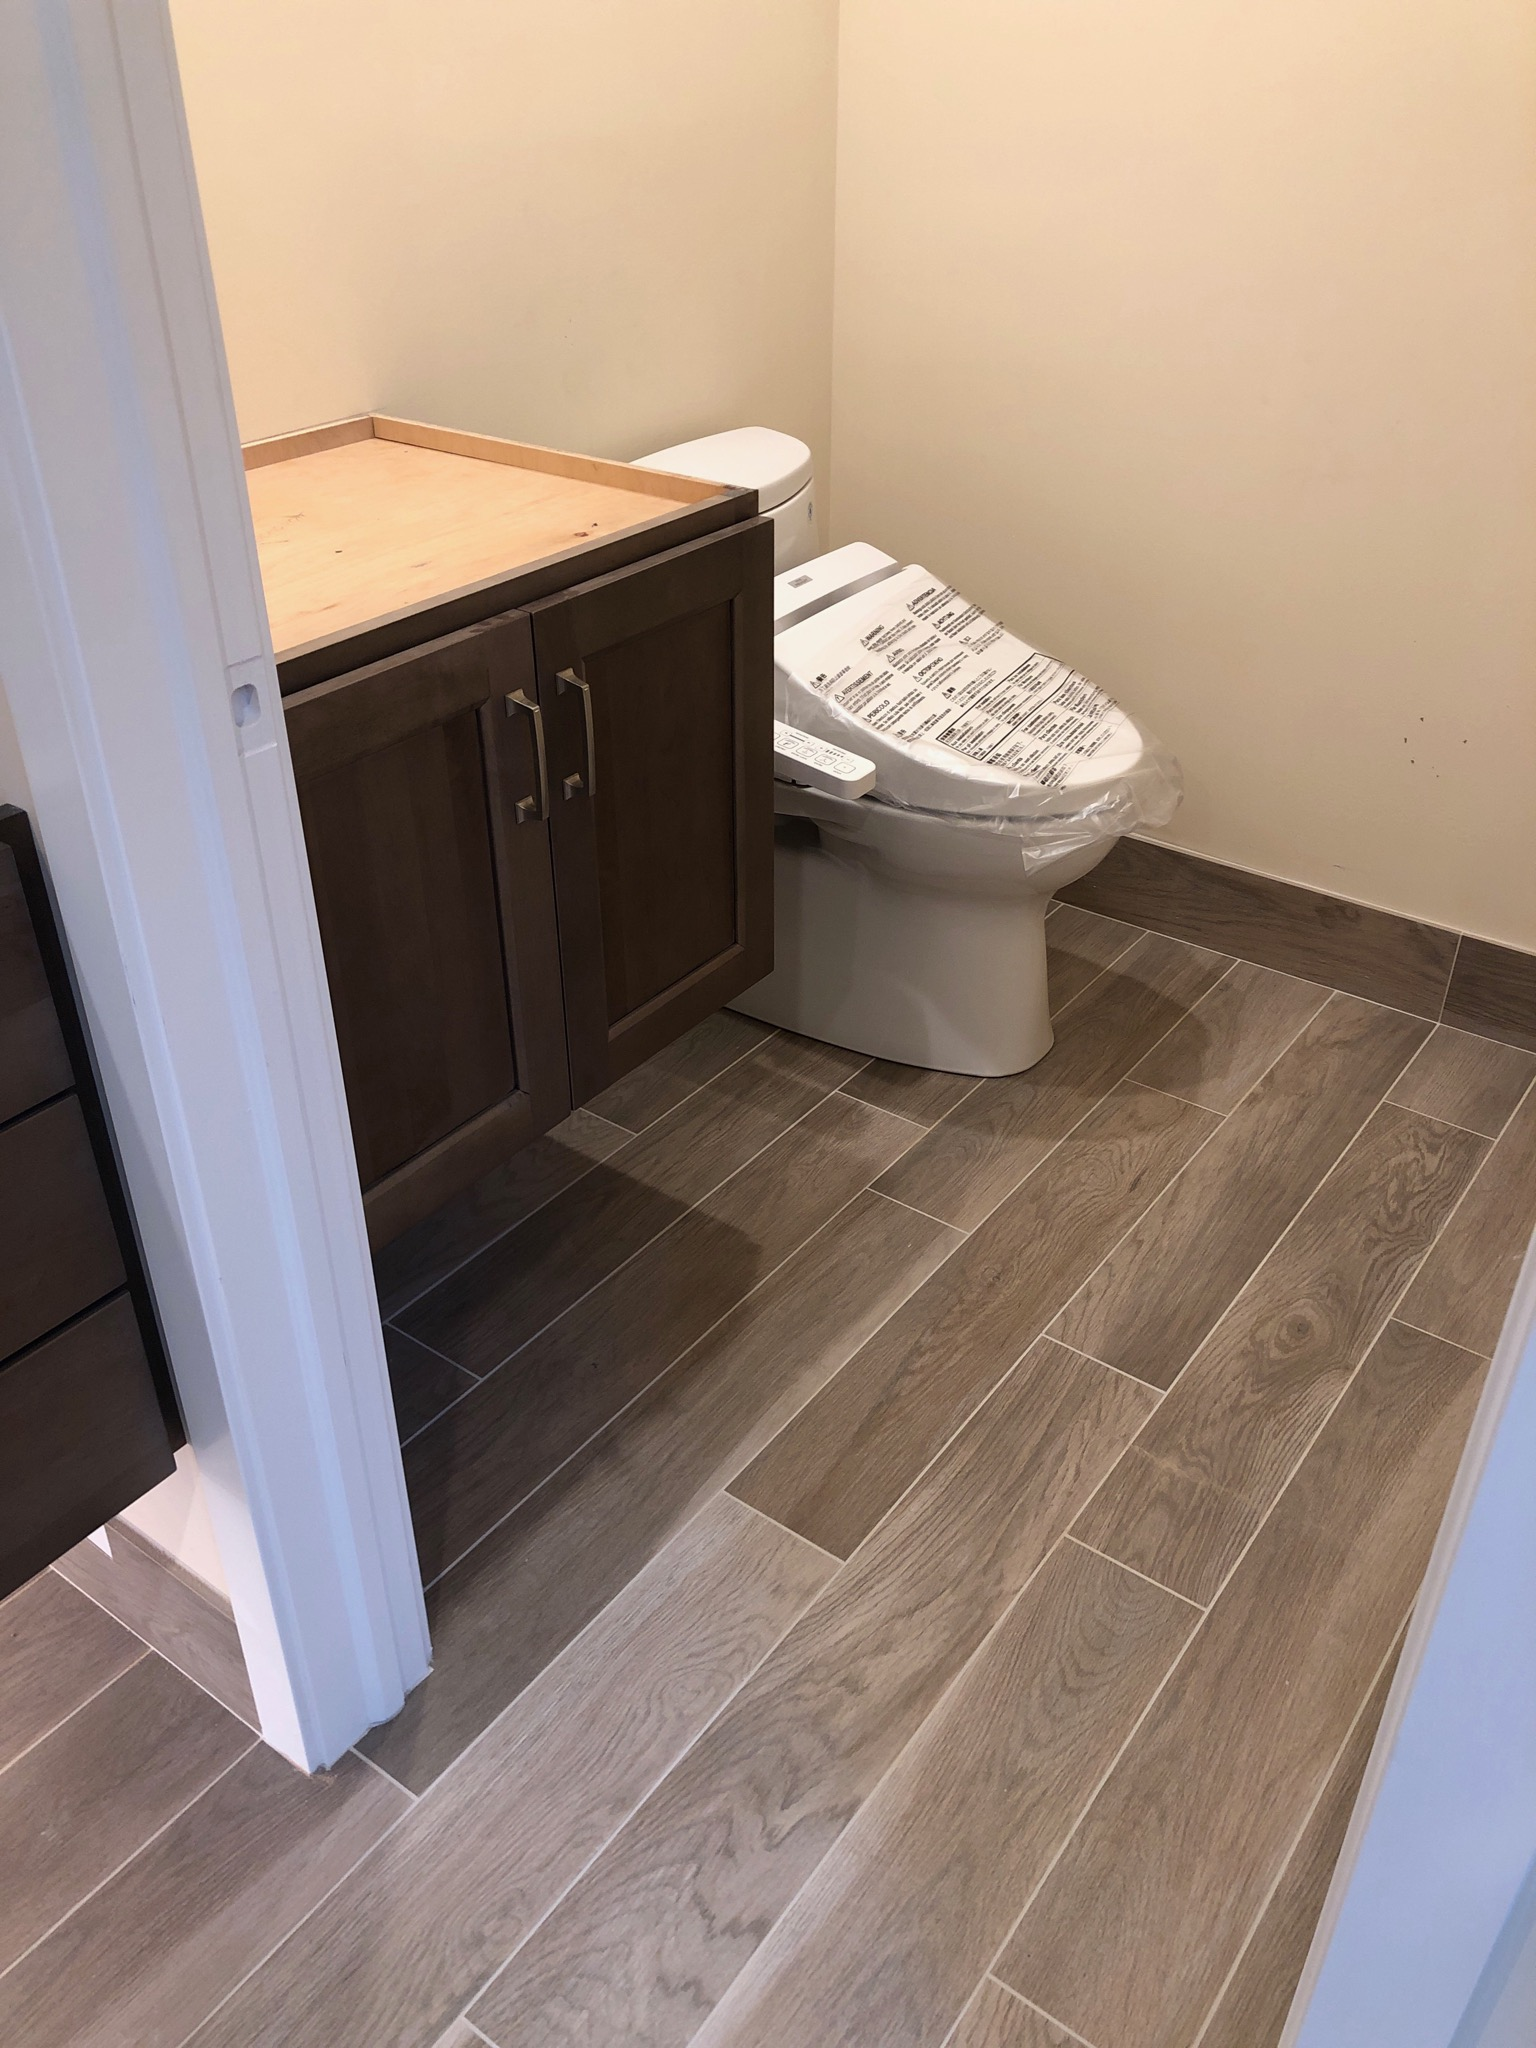 Toilet room newly grouted and waiting for  Cambria  quartz installation.